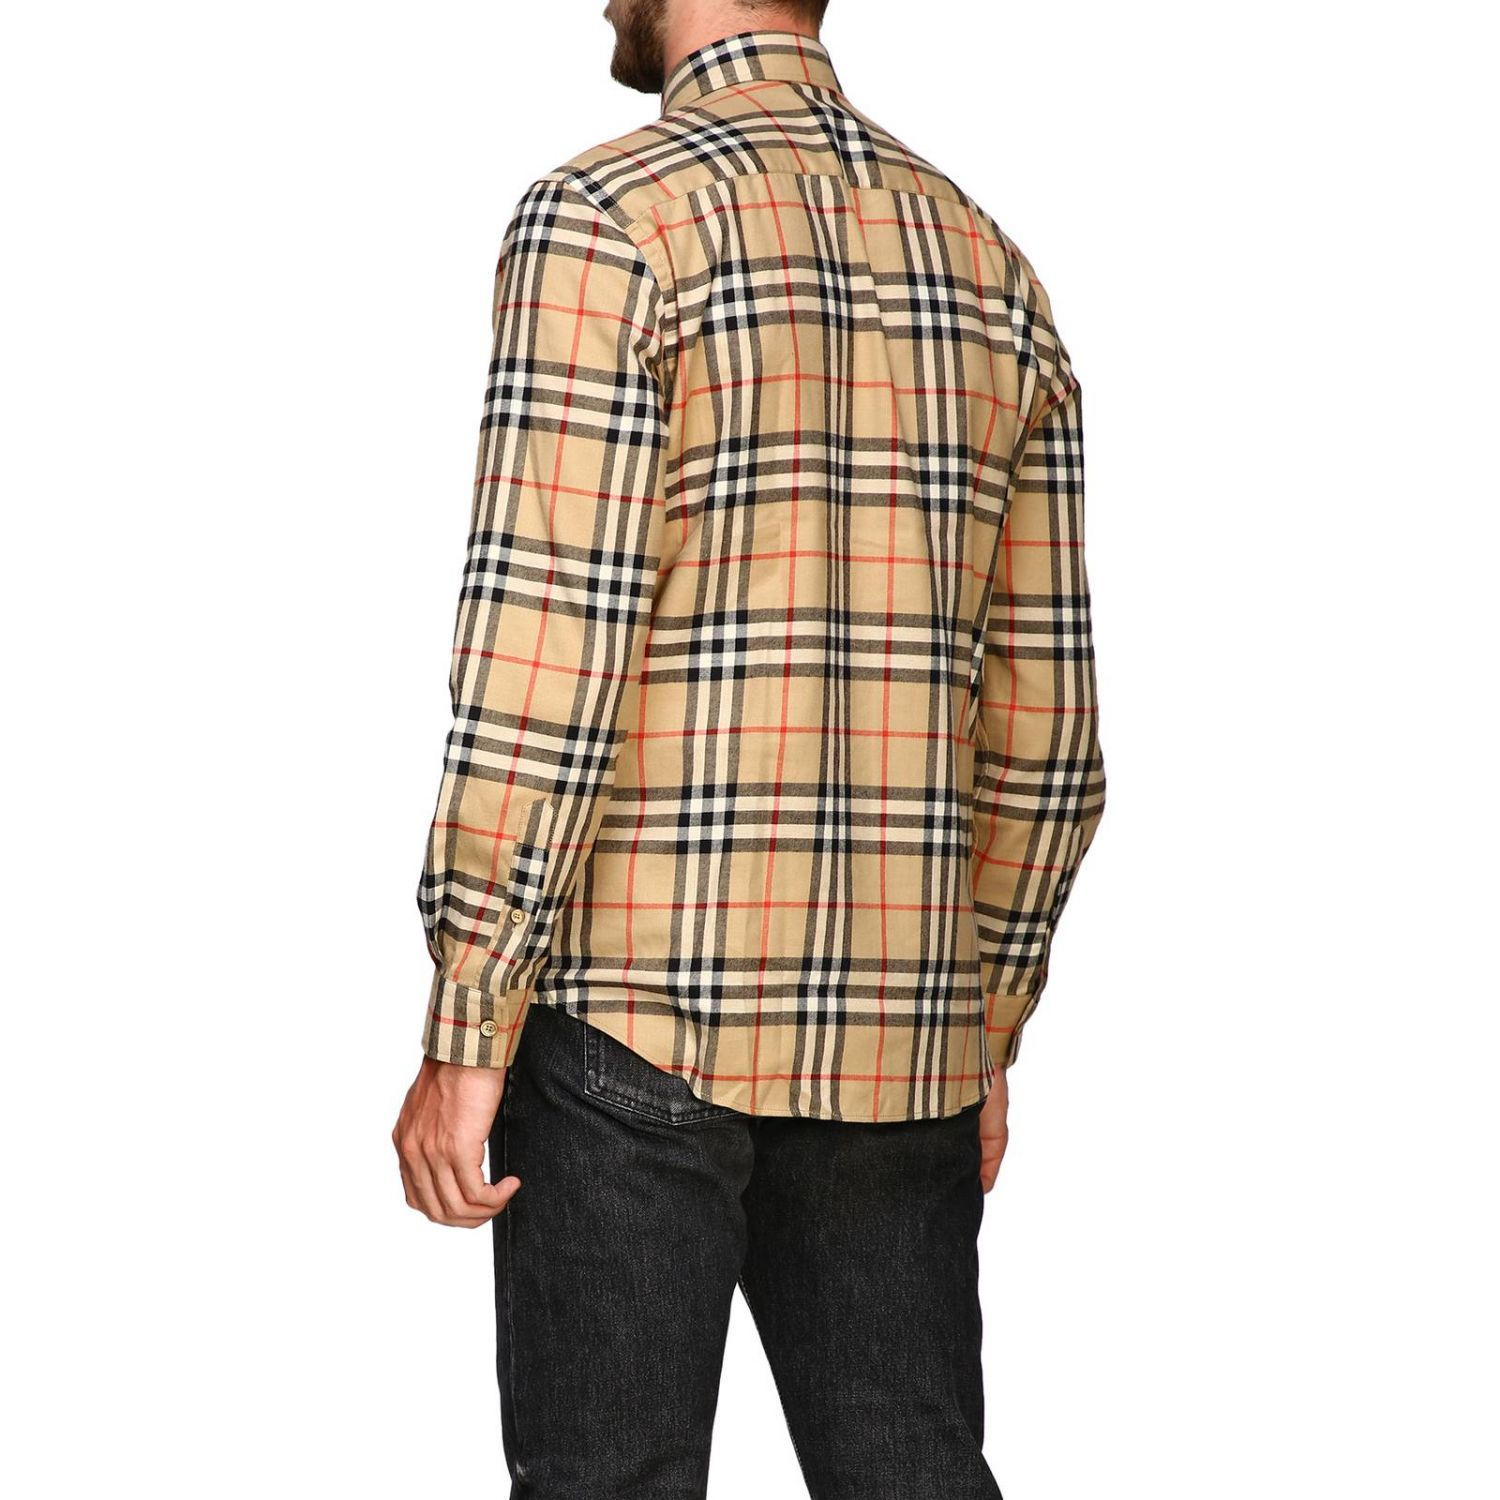 Chemise chambers Burberry motif check beige 3